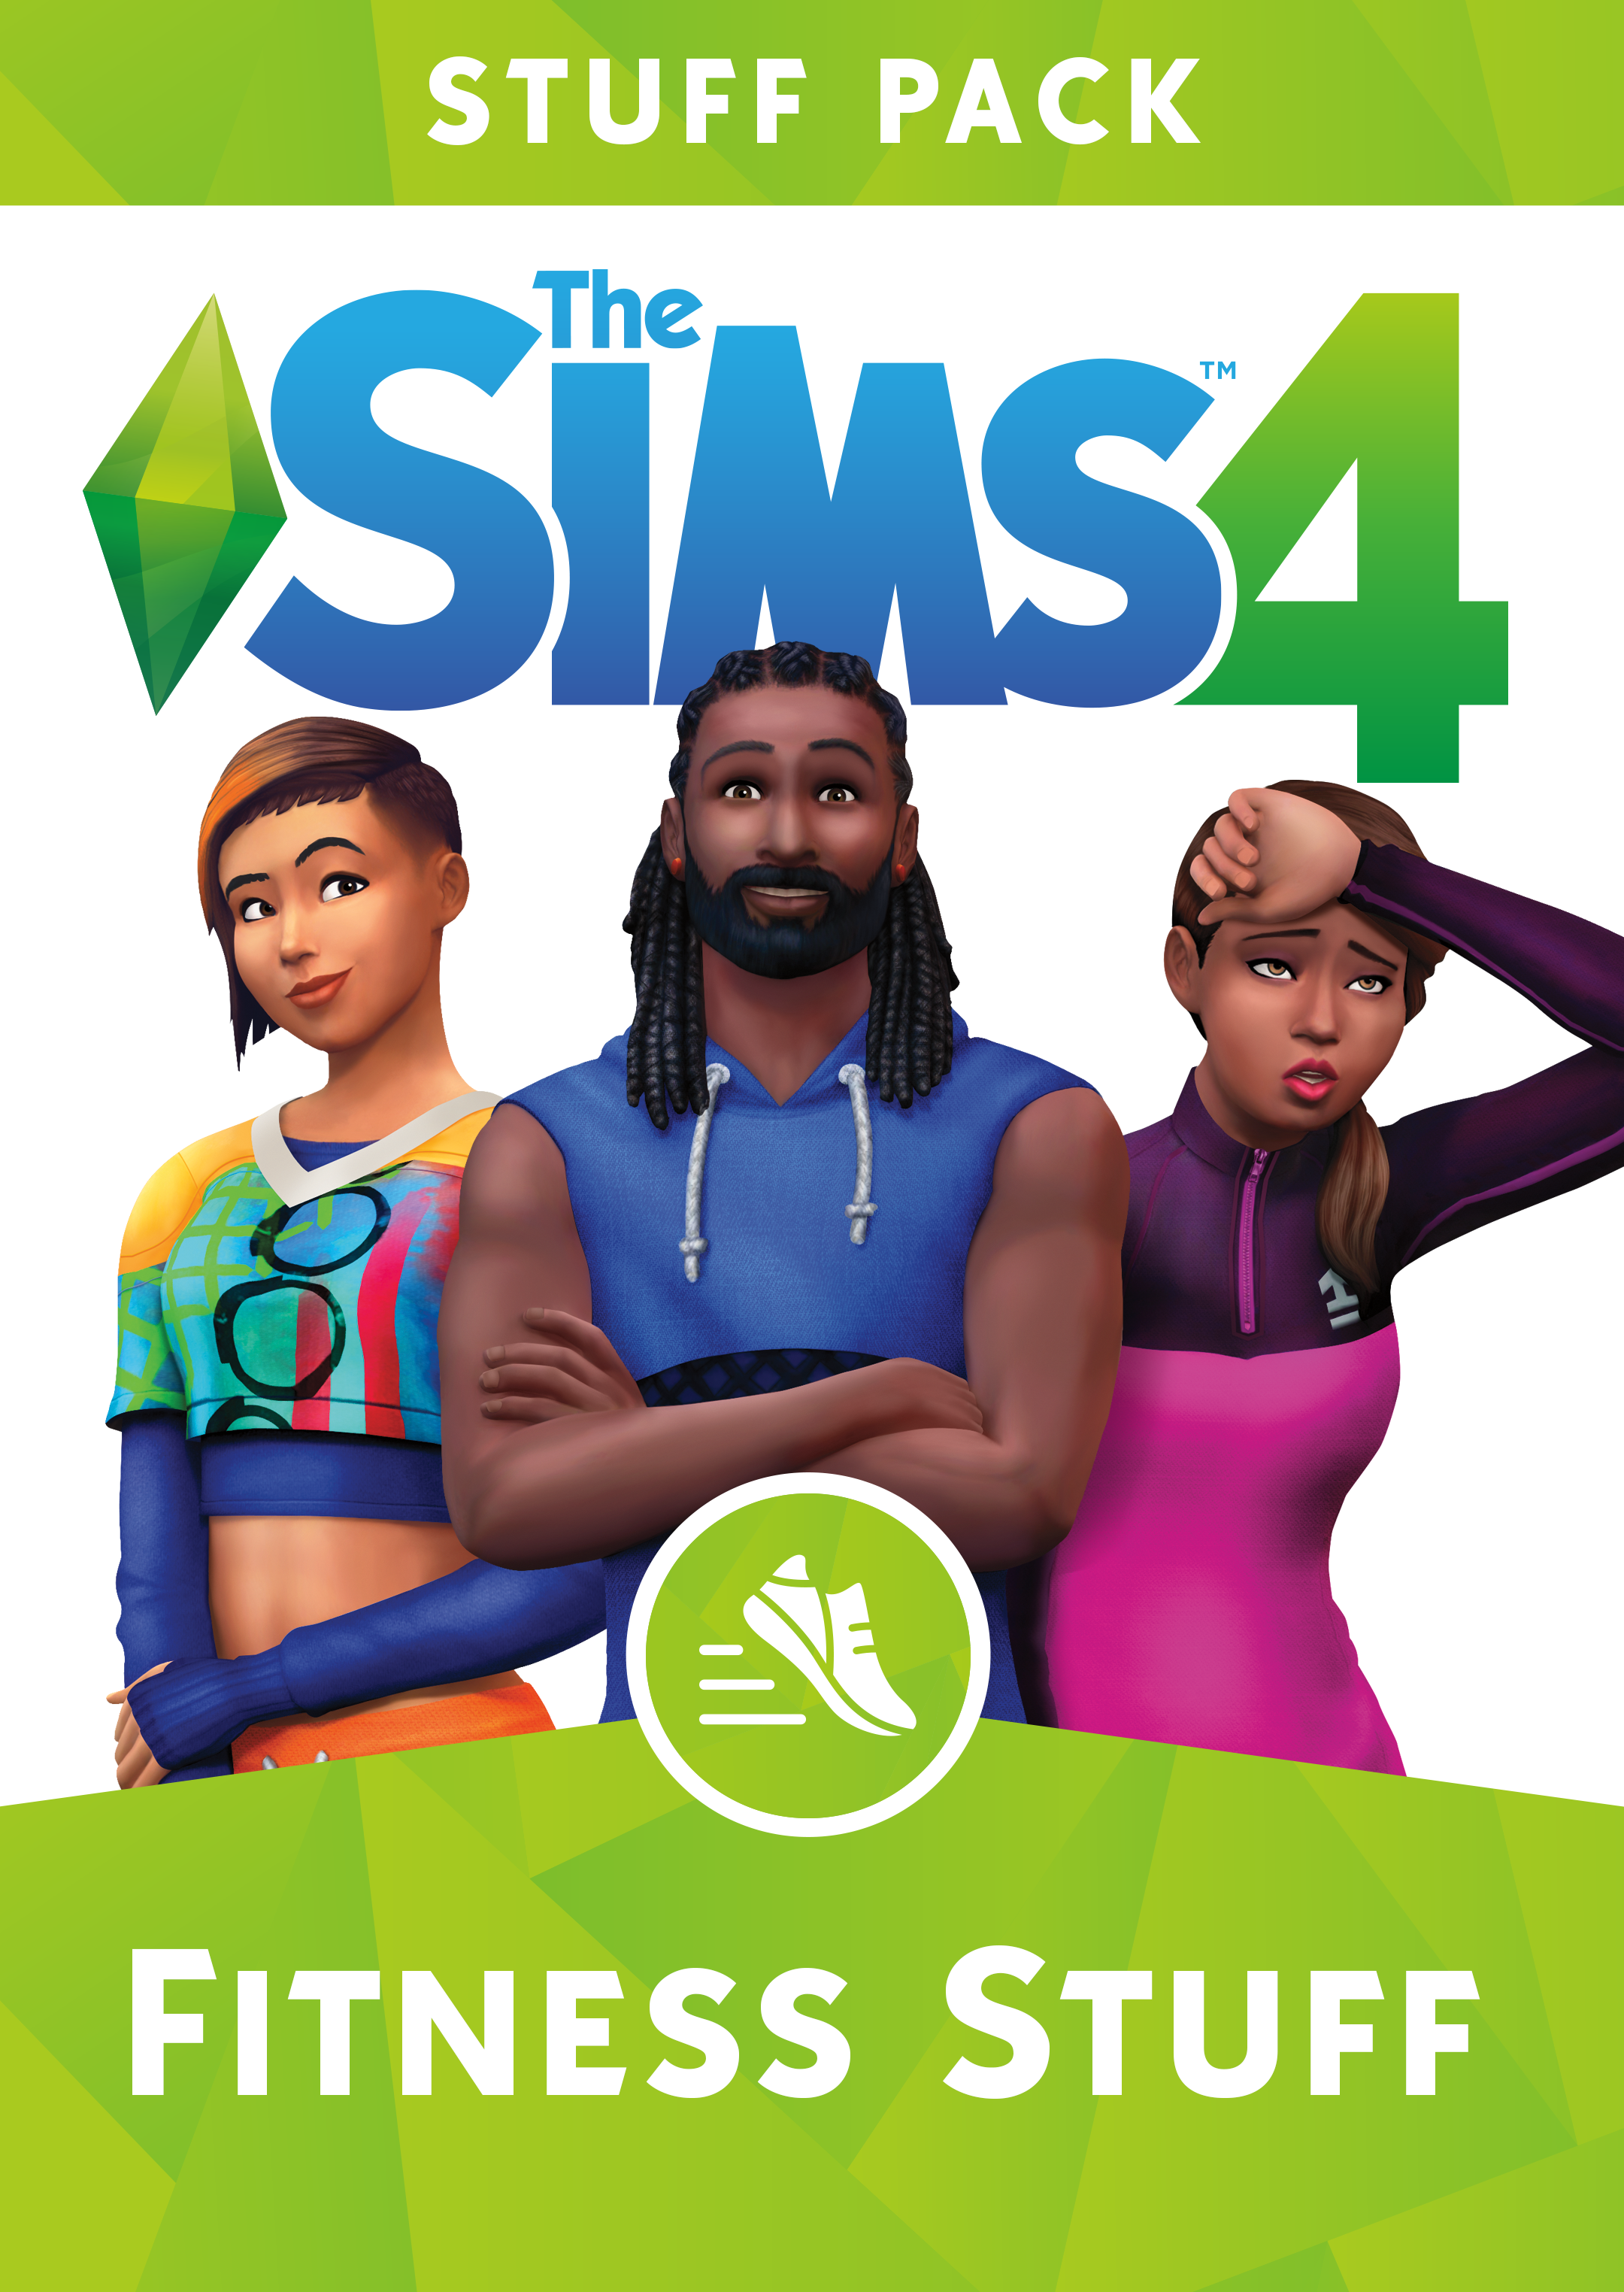 The Sims 4 Fitness Stuff Pack Guide | SimsVIP